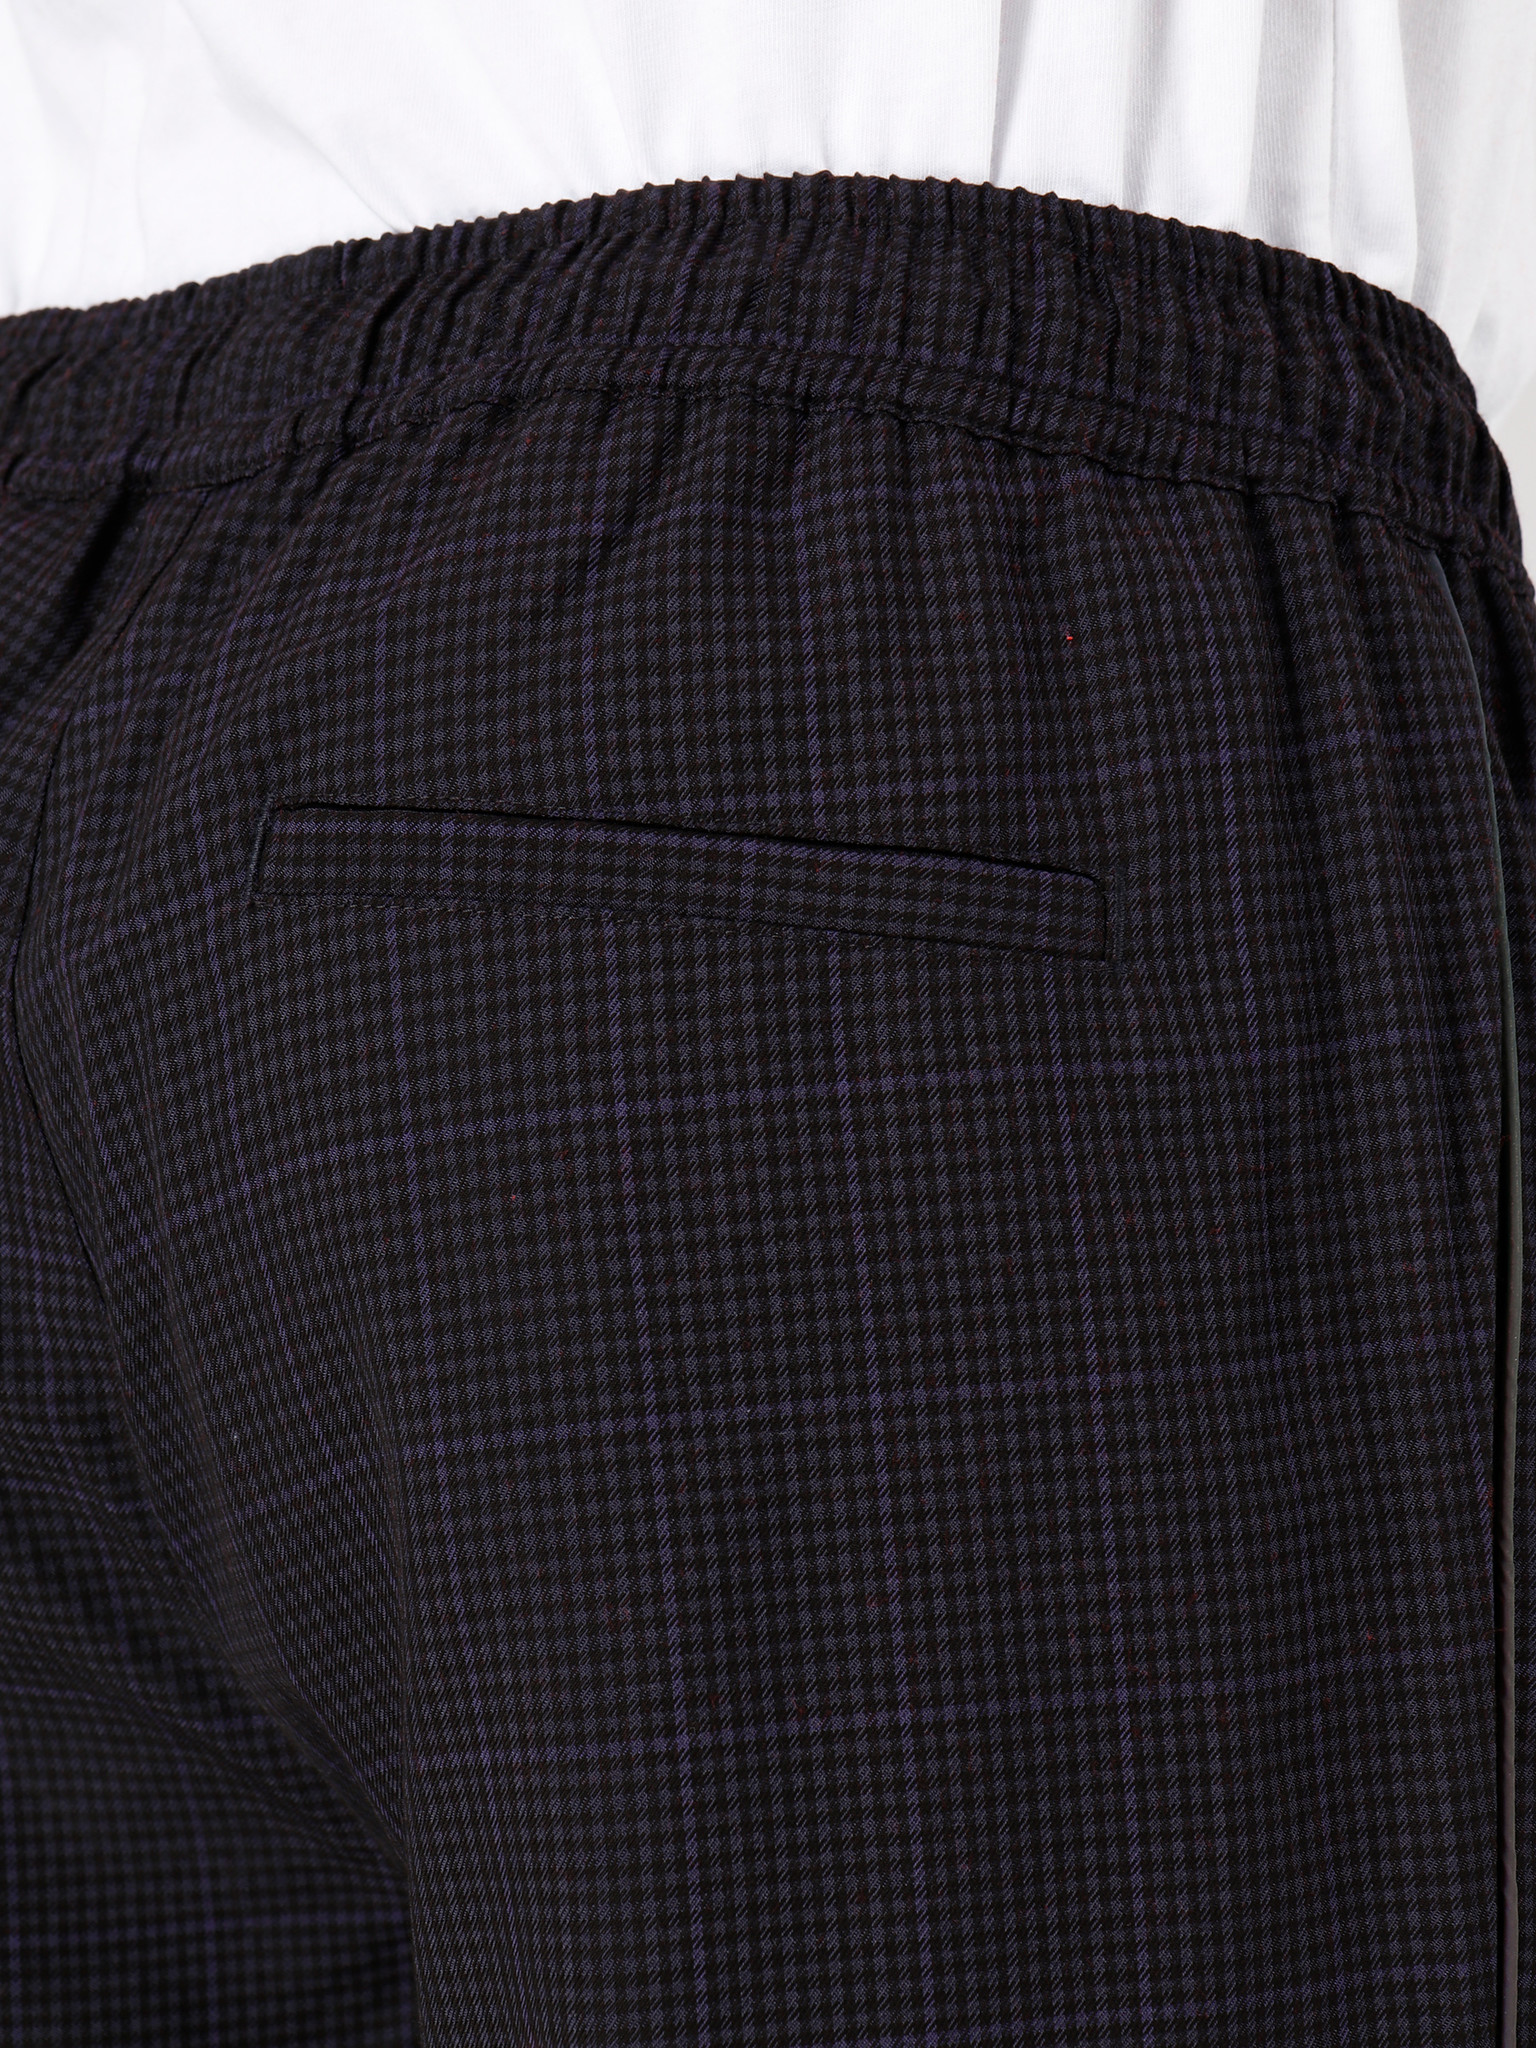 Daily Paper Daily Paper Gezip Check Pants Purple Check 19F1PA05-02